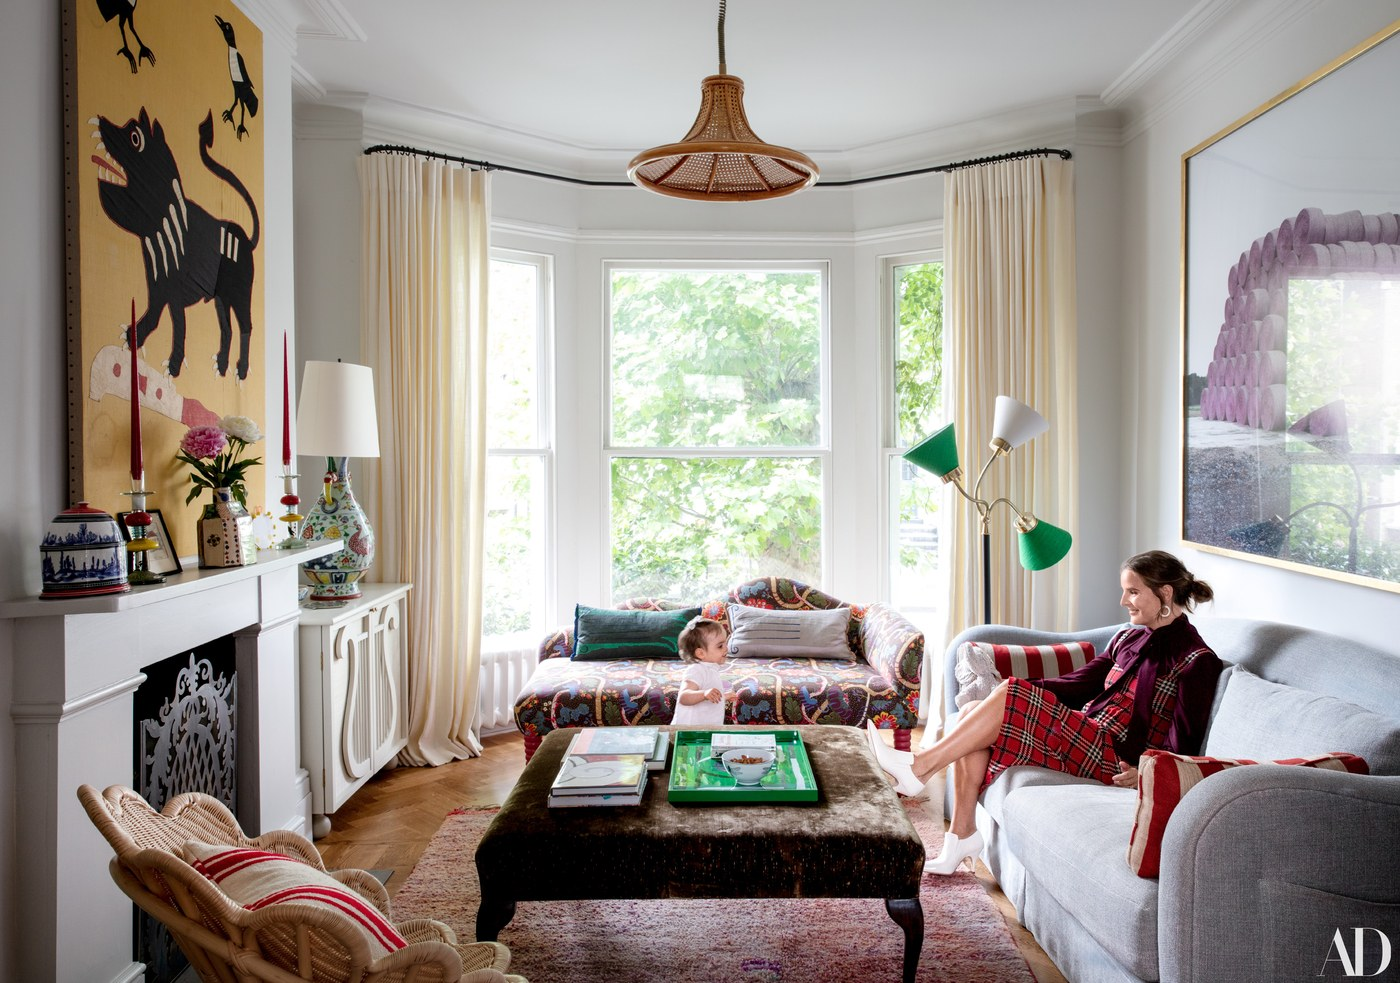 Beata heuman 39 s whimsical london home katie considers - Room creator interior design ...